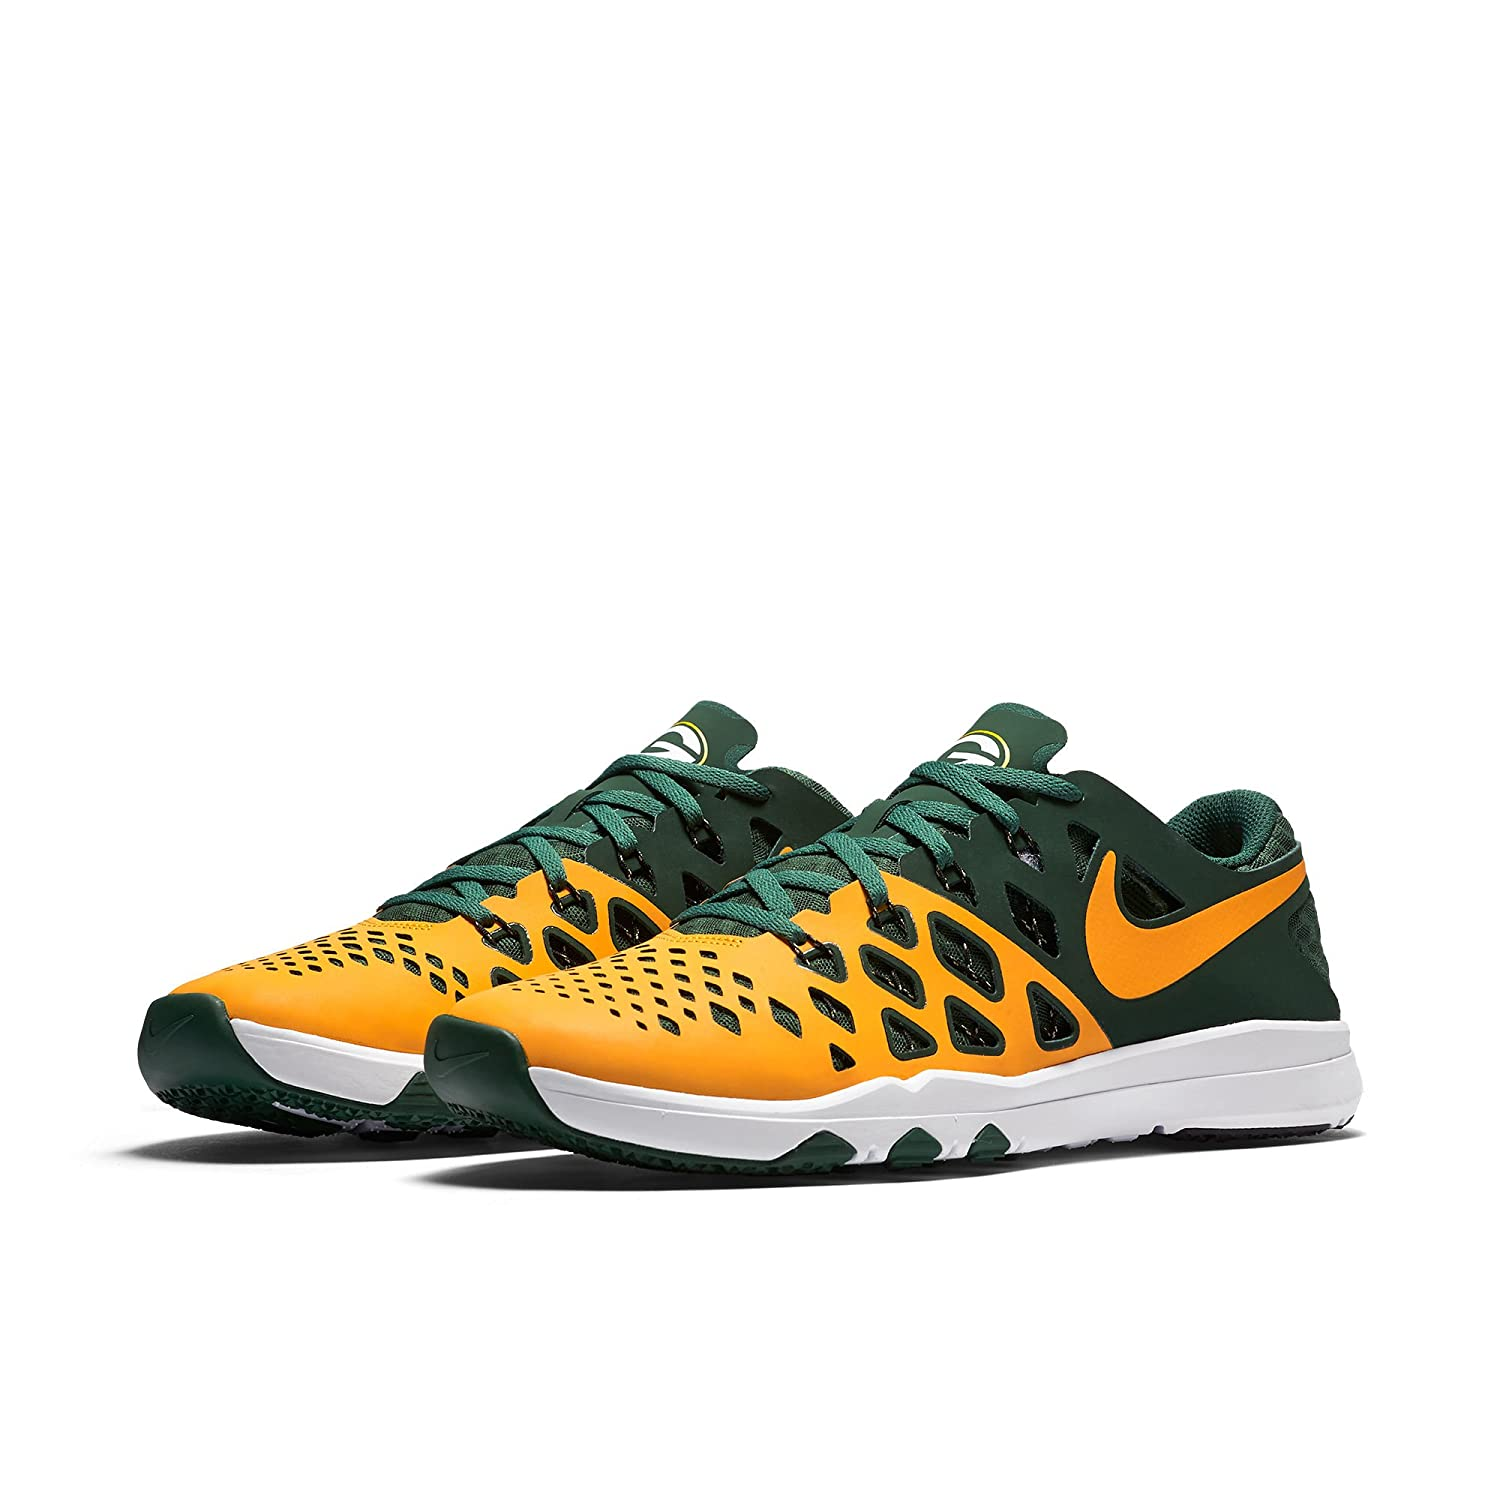 sports shoes c013f 349d5 Amazon.com   NIKE Train Speed 4 AMP NFL Green Bay Packers Limited Edition  Shoes Size Mens 9 US - Reflective Gold   Fitness   Cross-Training